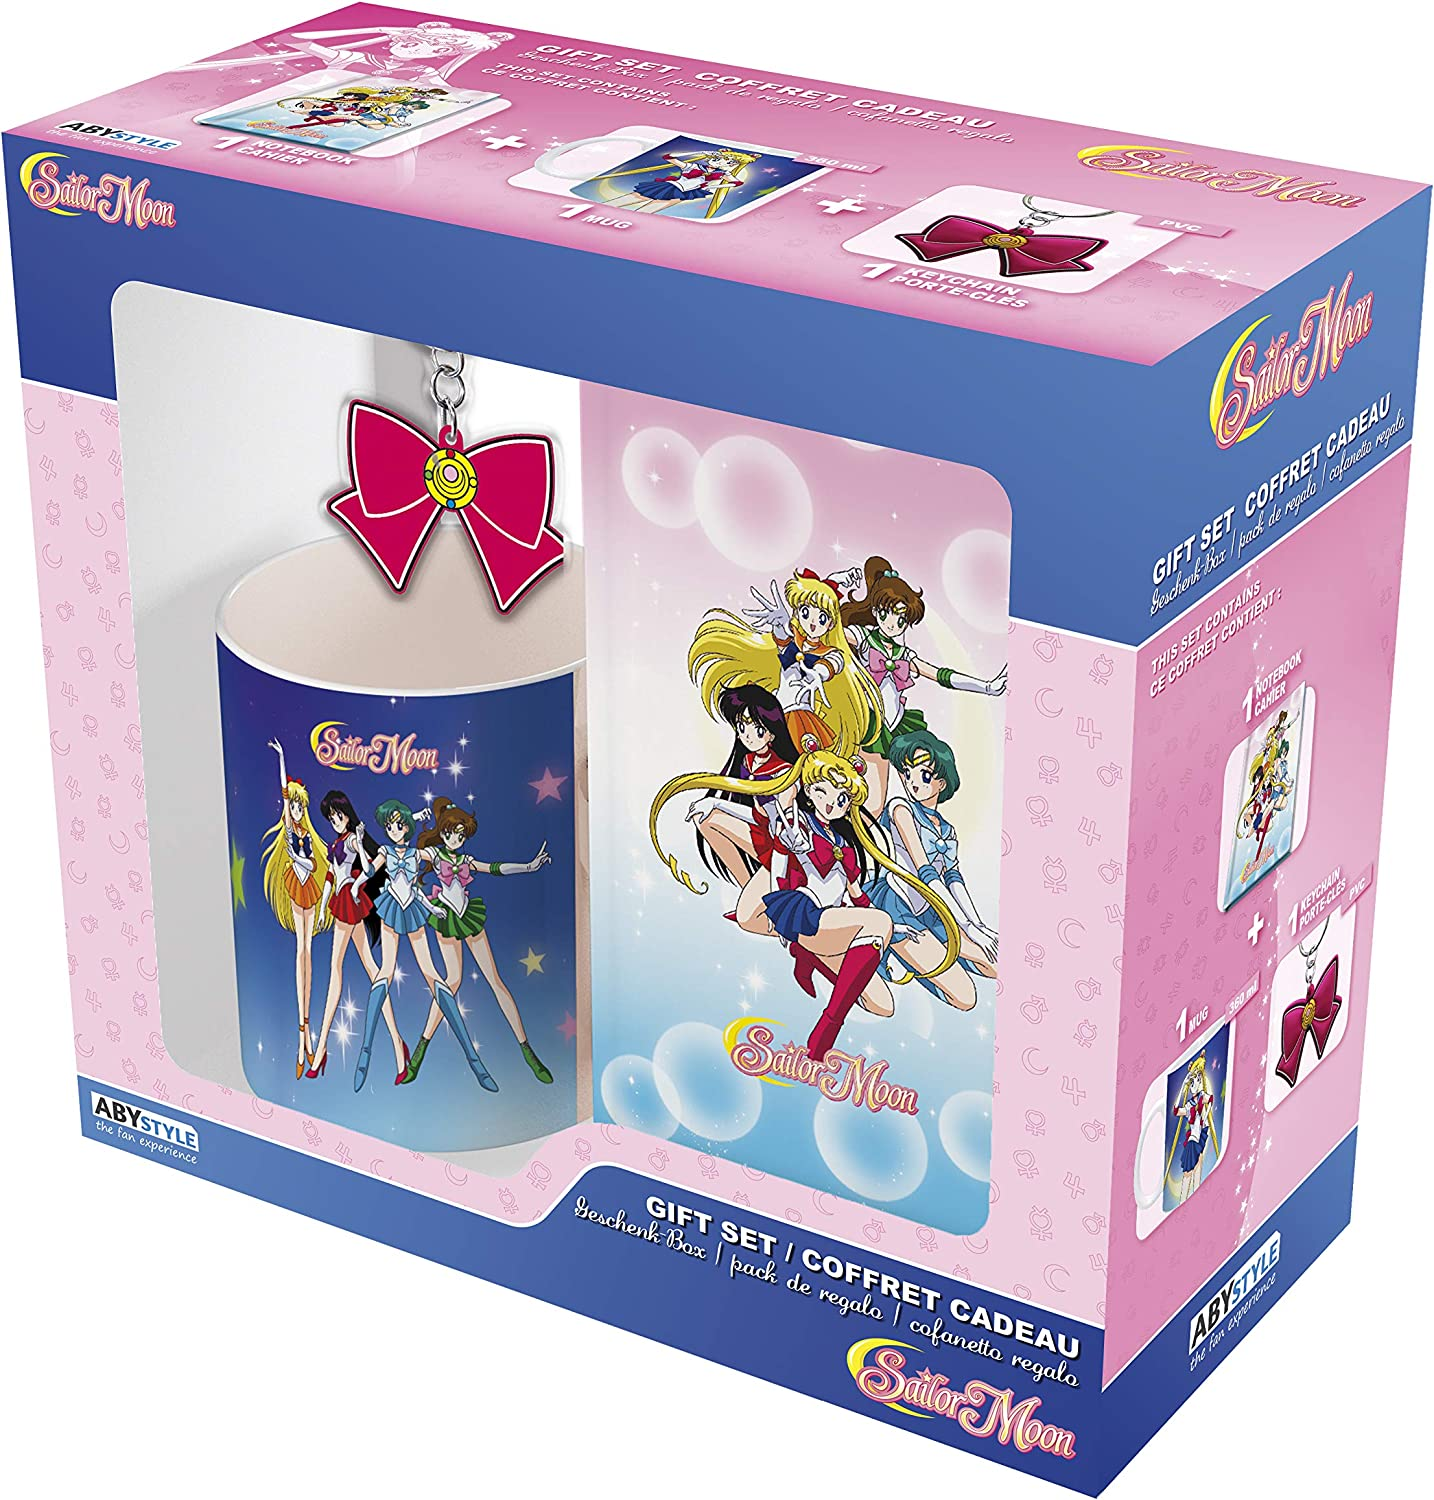 ABYstyle Abysse America Sailor Moon Gift Set - Coffee Mug Keychain & Notebook: Amazon.es: Hogar